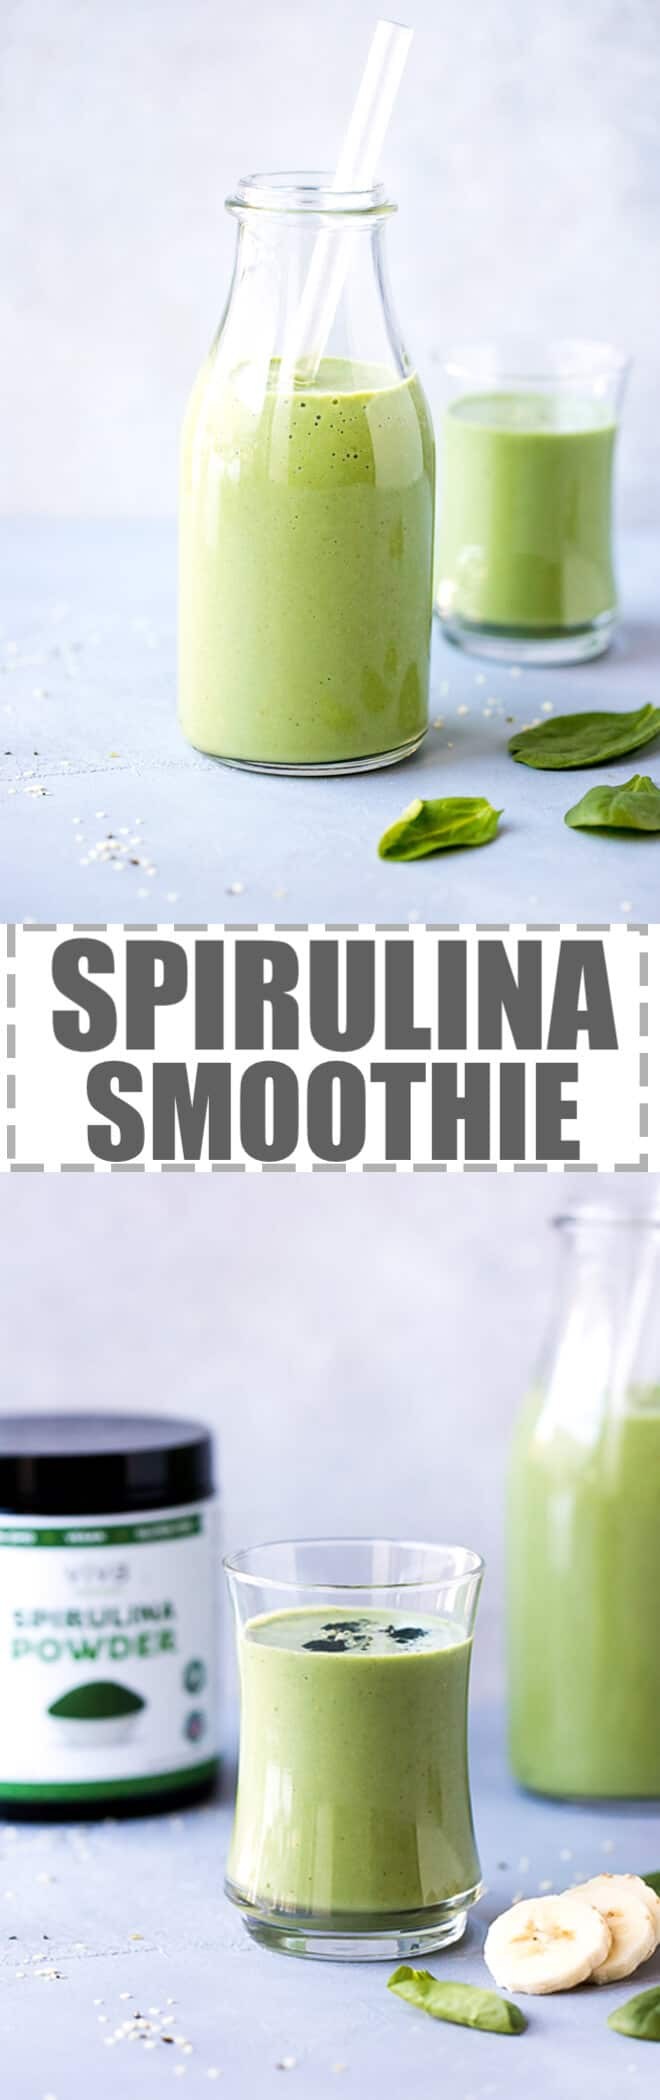 Spirulina Smoothie Recipe - simple, refreshing and nutritious drink, perfect for post workout or a healthy snack.